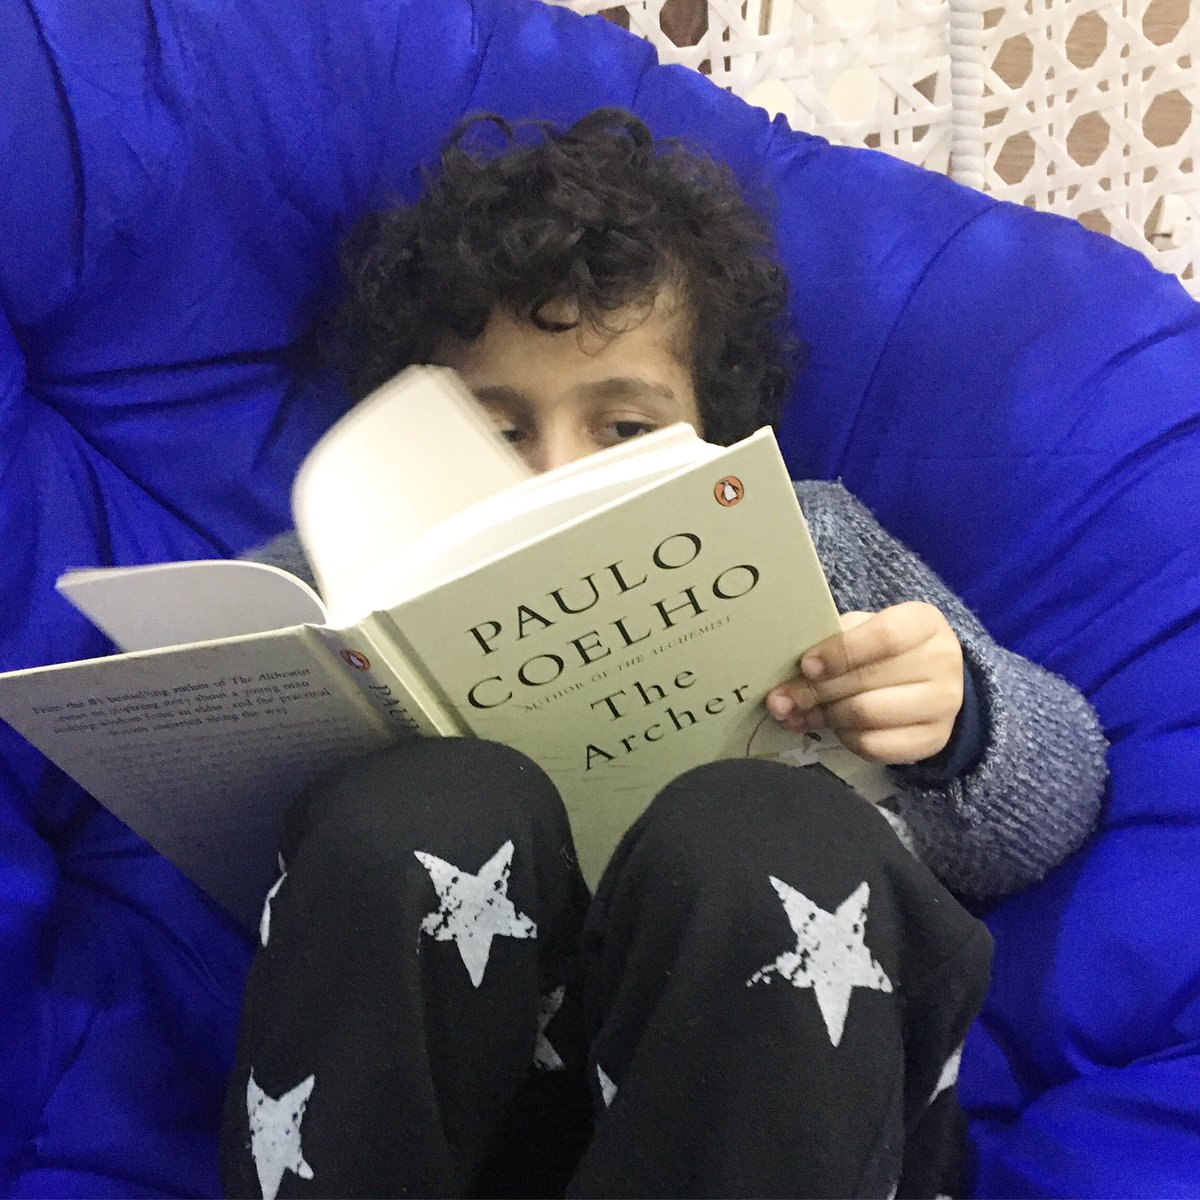 @paulocoelho My three year old son loved the illustrations. A wonderful book. I read it in less than 60 min. #TheArcher